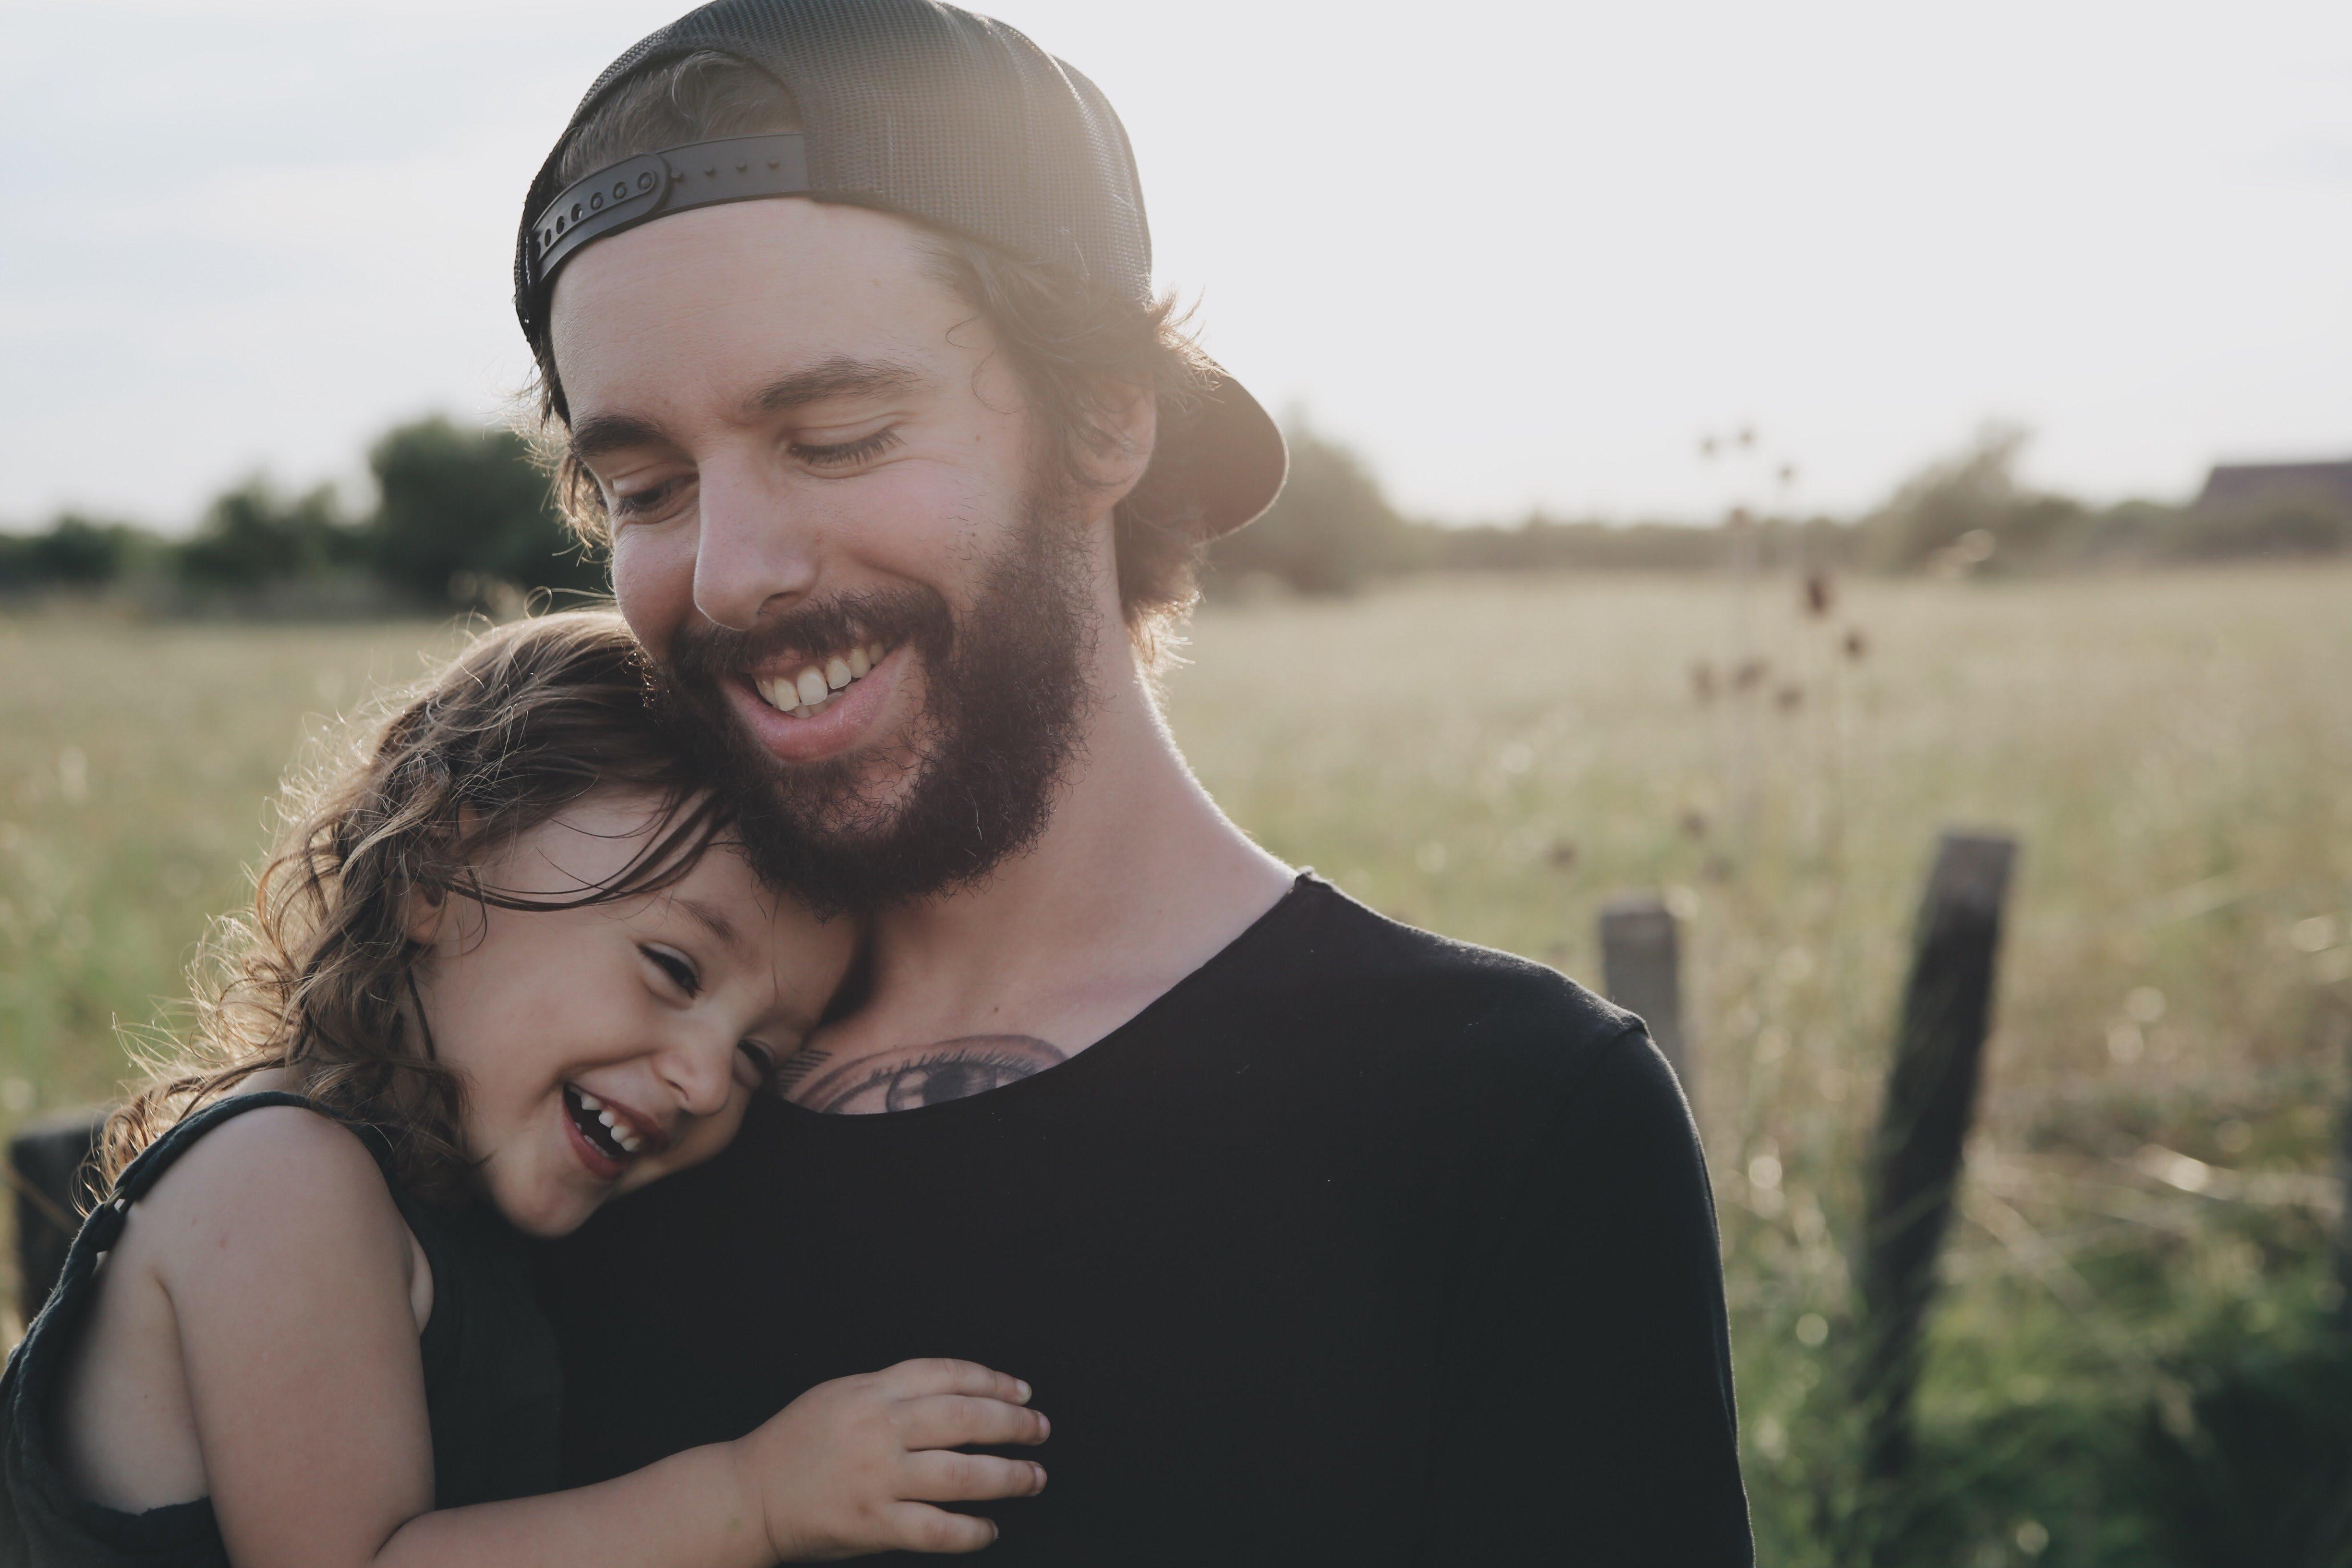 A father and daughter | Source: Unsplash.com